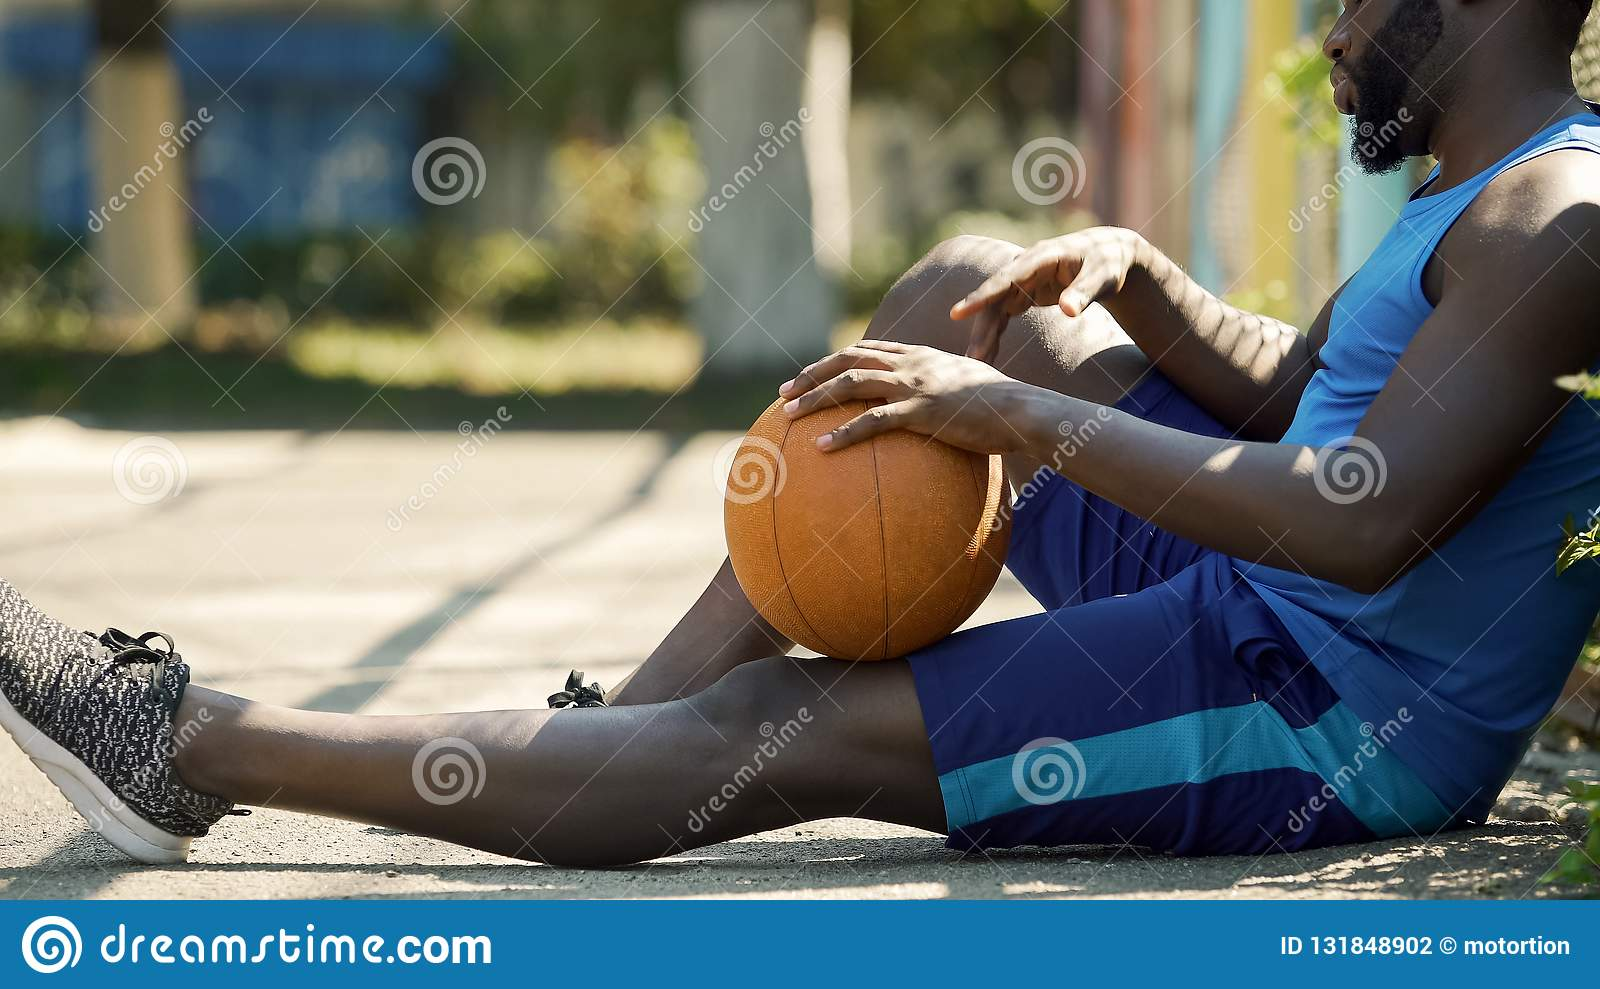 Lonely Afro-American basketball player sitting on ground with ball, sadness